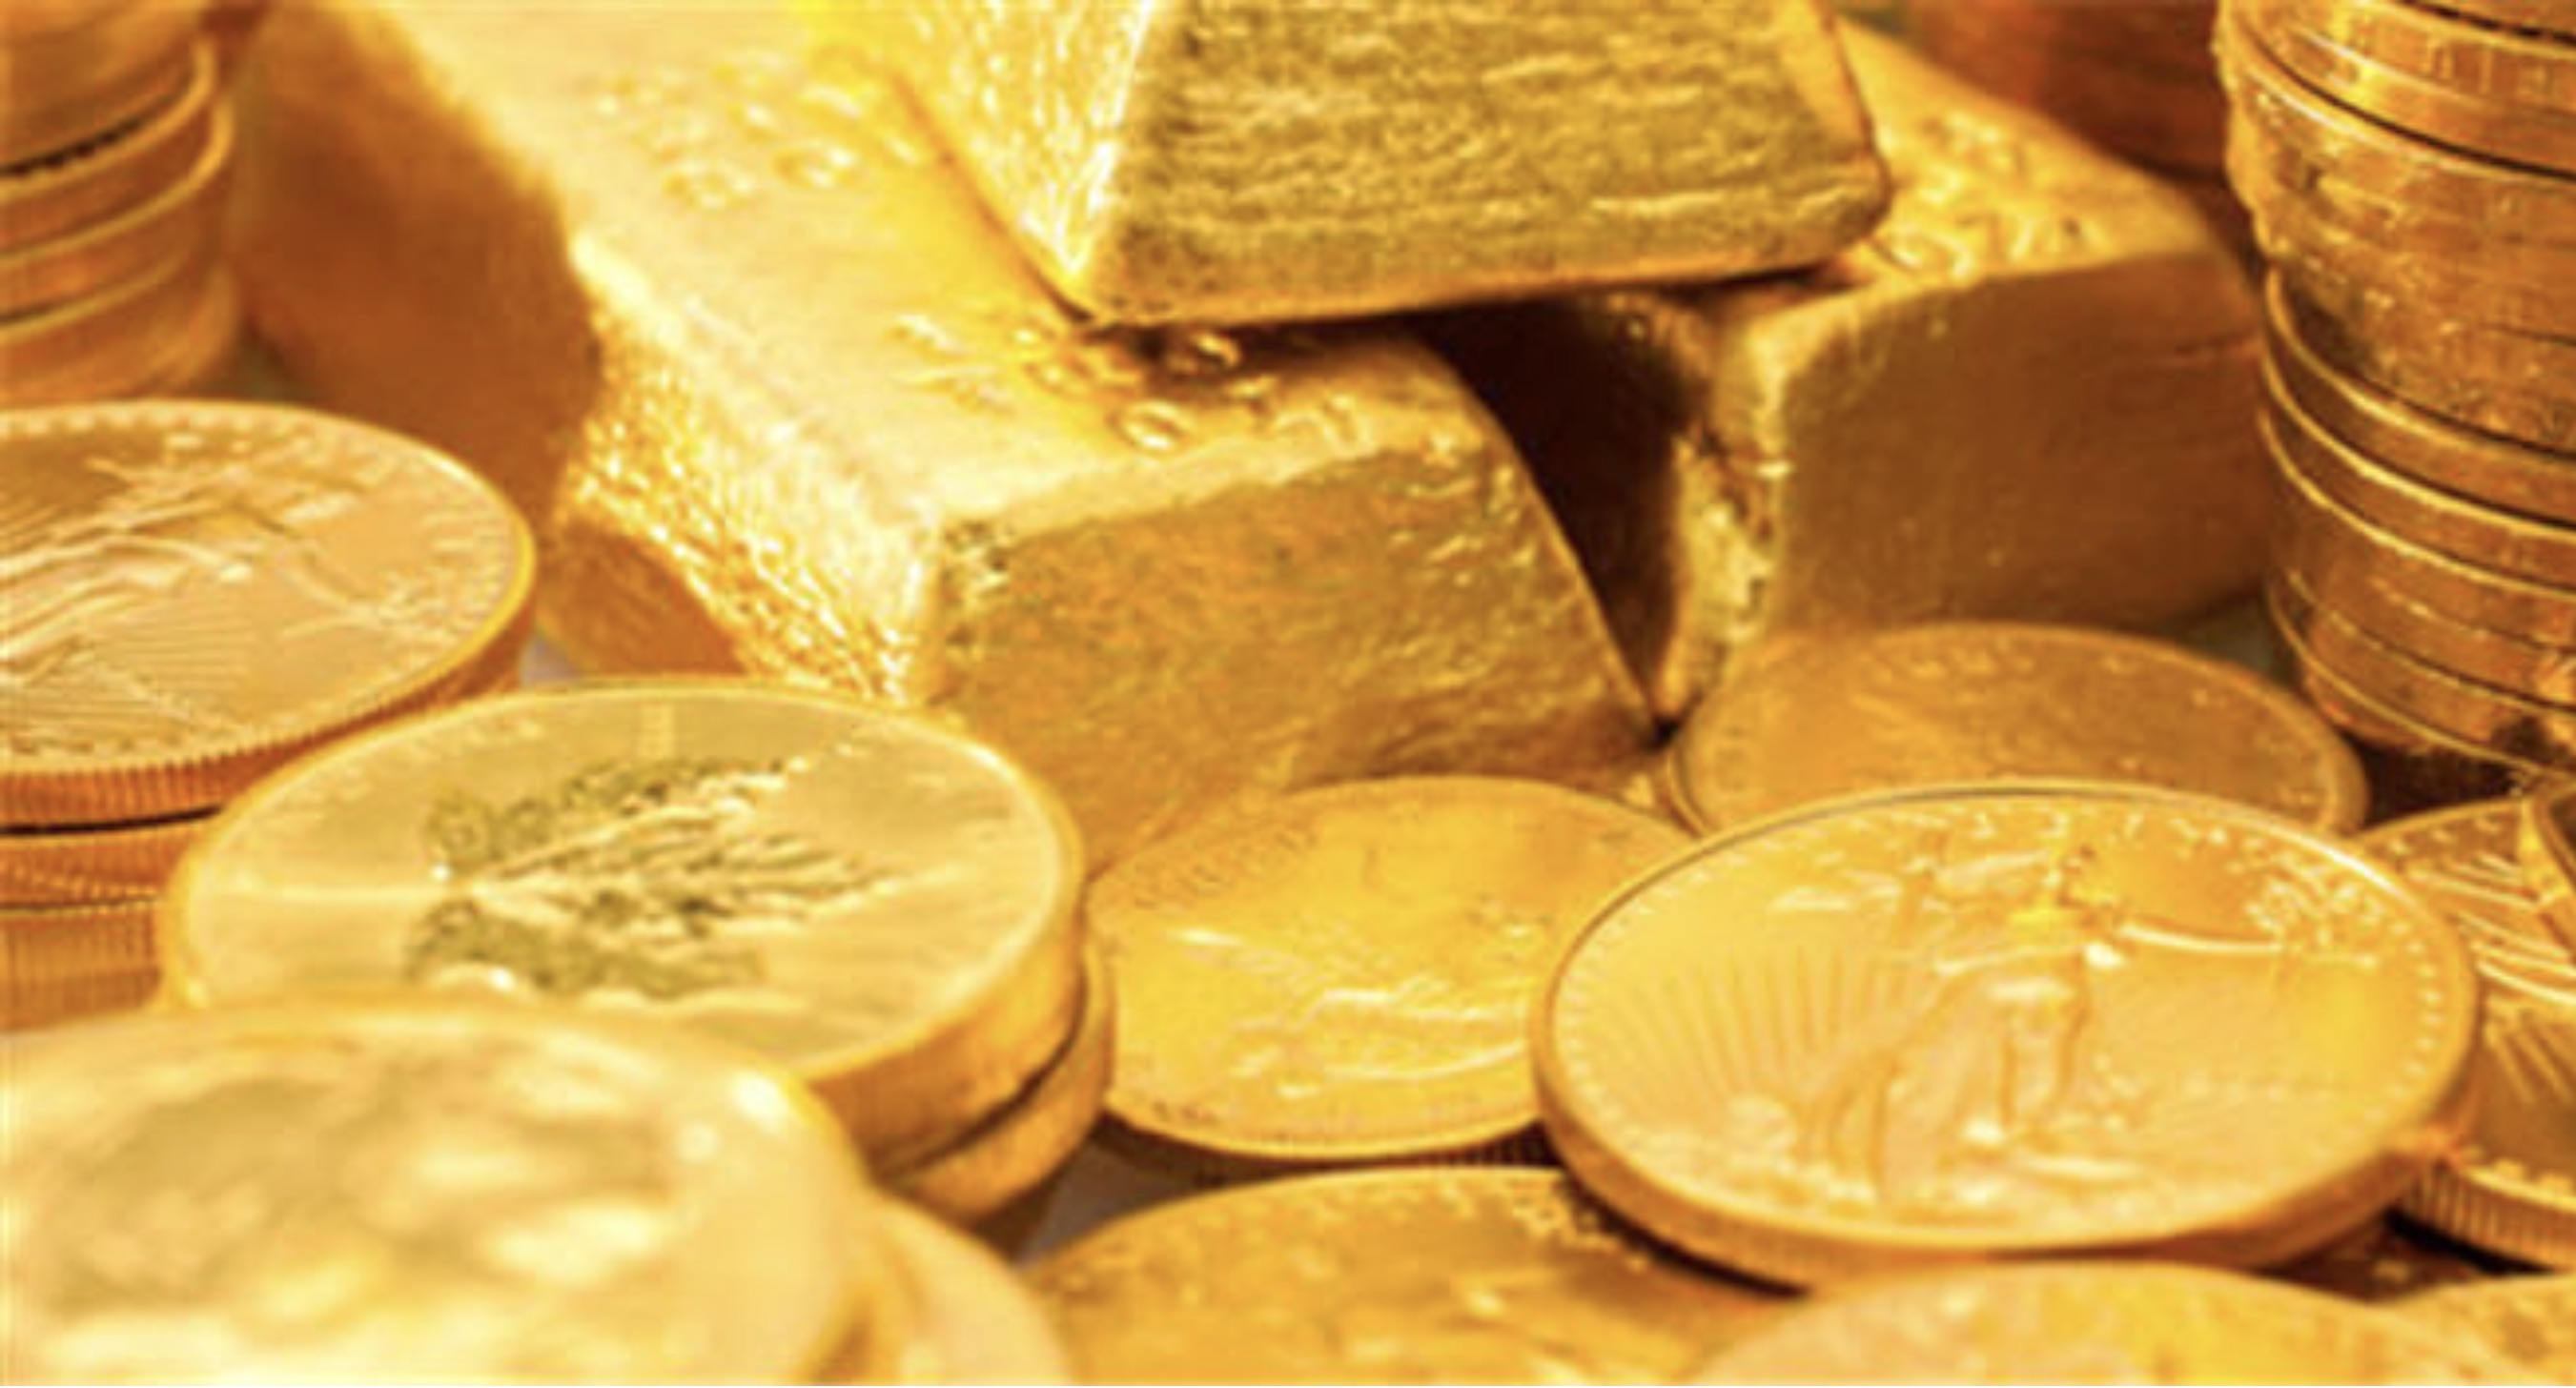 king-world-news-analyst-david-p-out-of-europe-3500-gold-target-and-two-wildly-gold-bullish-charts-for-2018